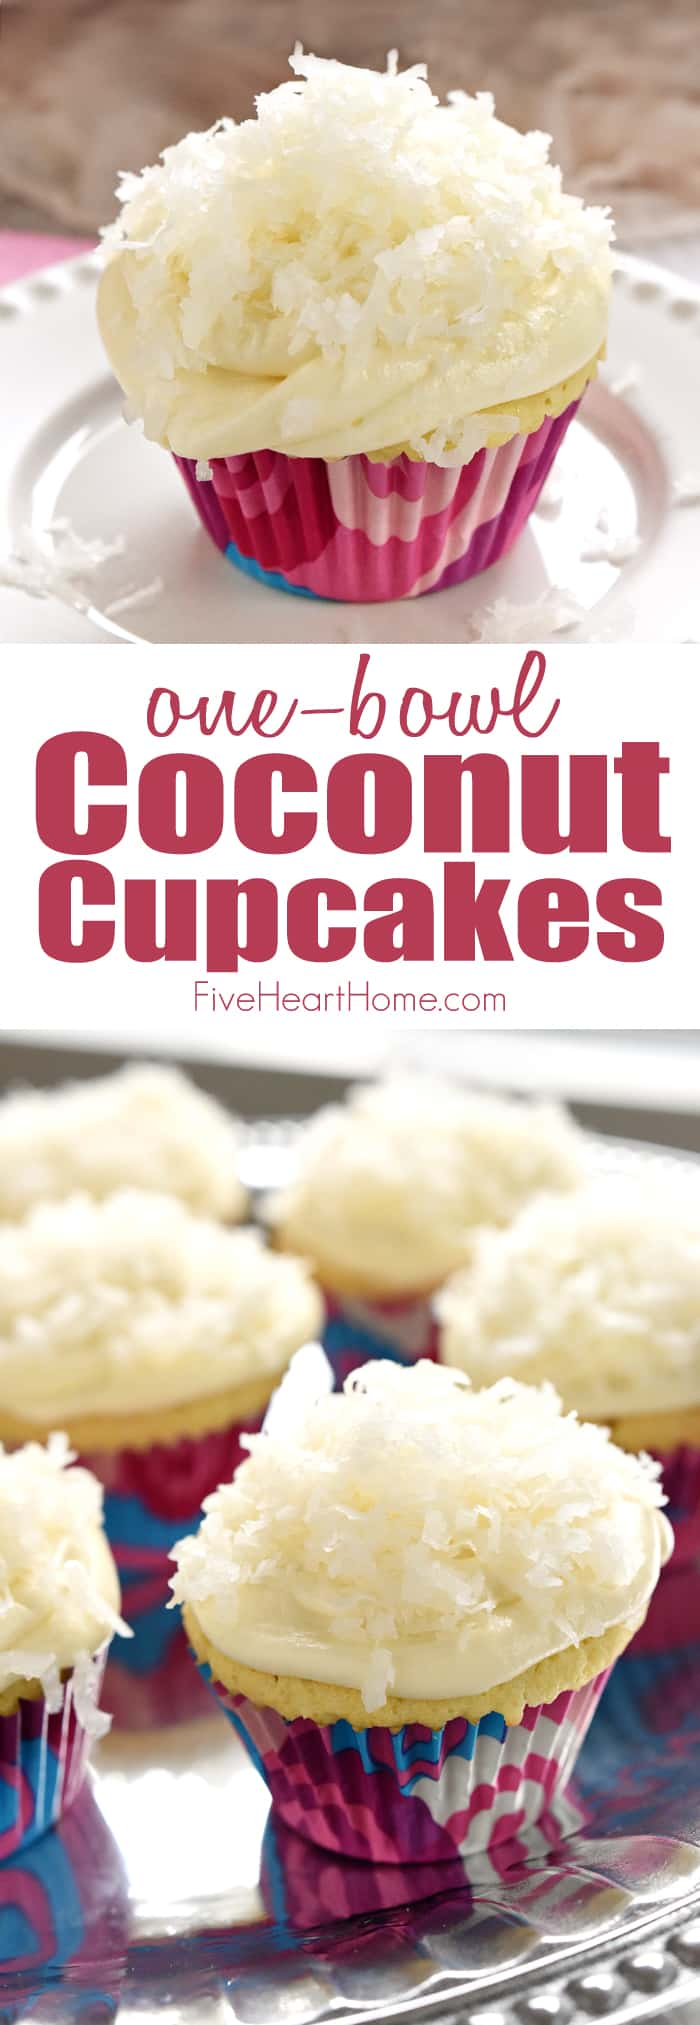 One-Bowl Coconut Cupcakes ~ these easy-to-make cupcakes are extremely moist (thanks to coconut milk) and topped with tangy cream cheese frosting and sweetened coconut flakes | FiveHeartHome.com